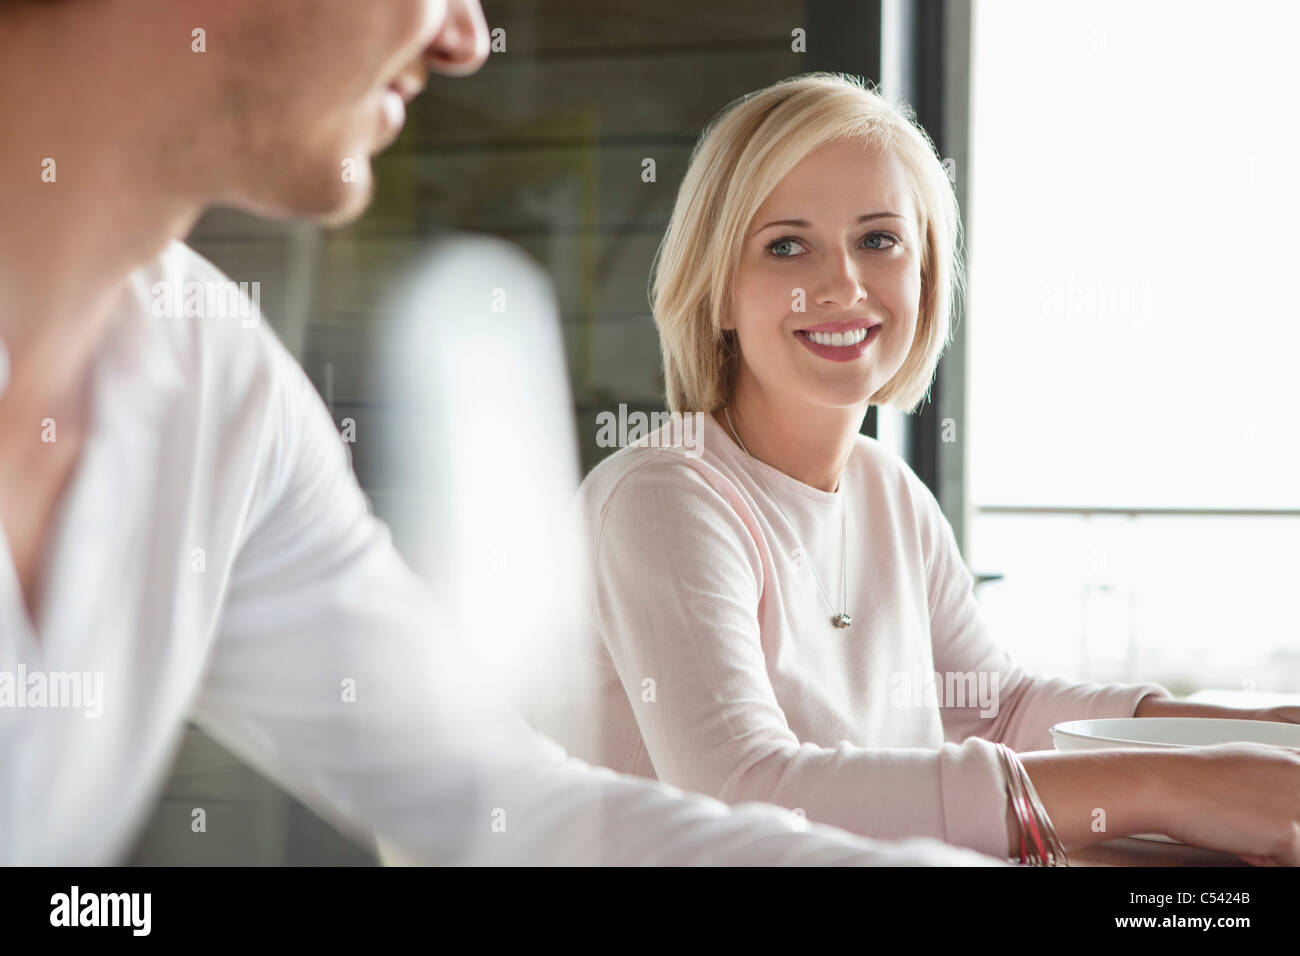 Woman looking at her husband and smiling - Stock Image